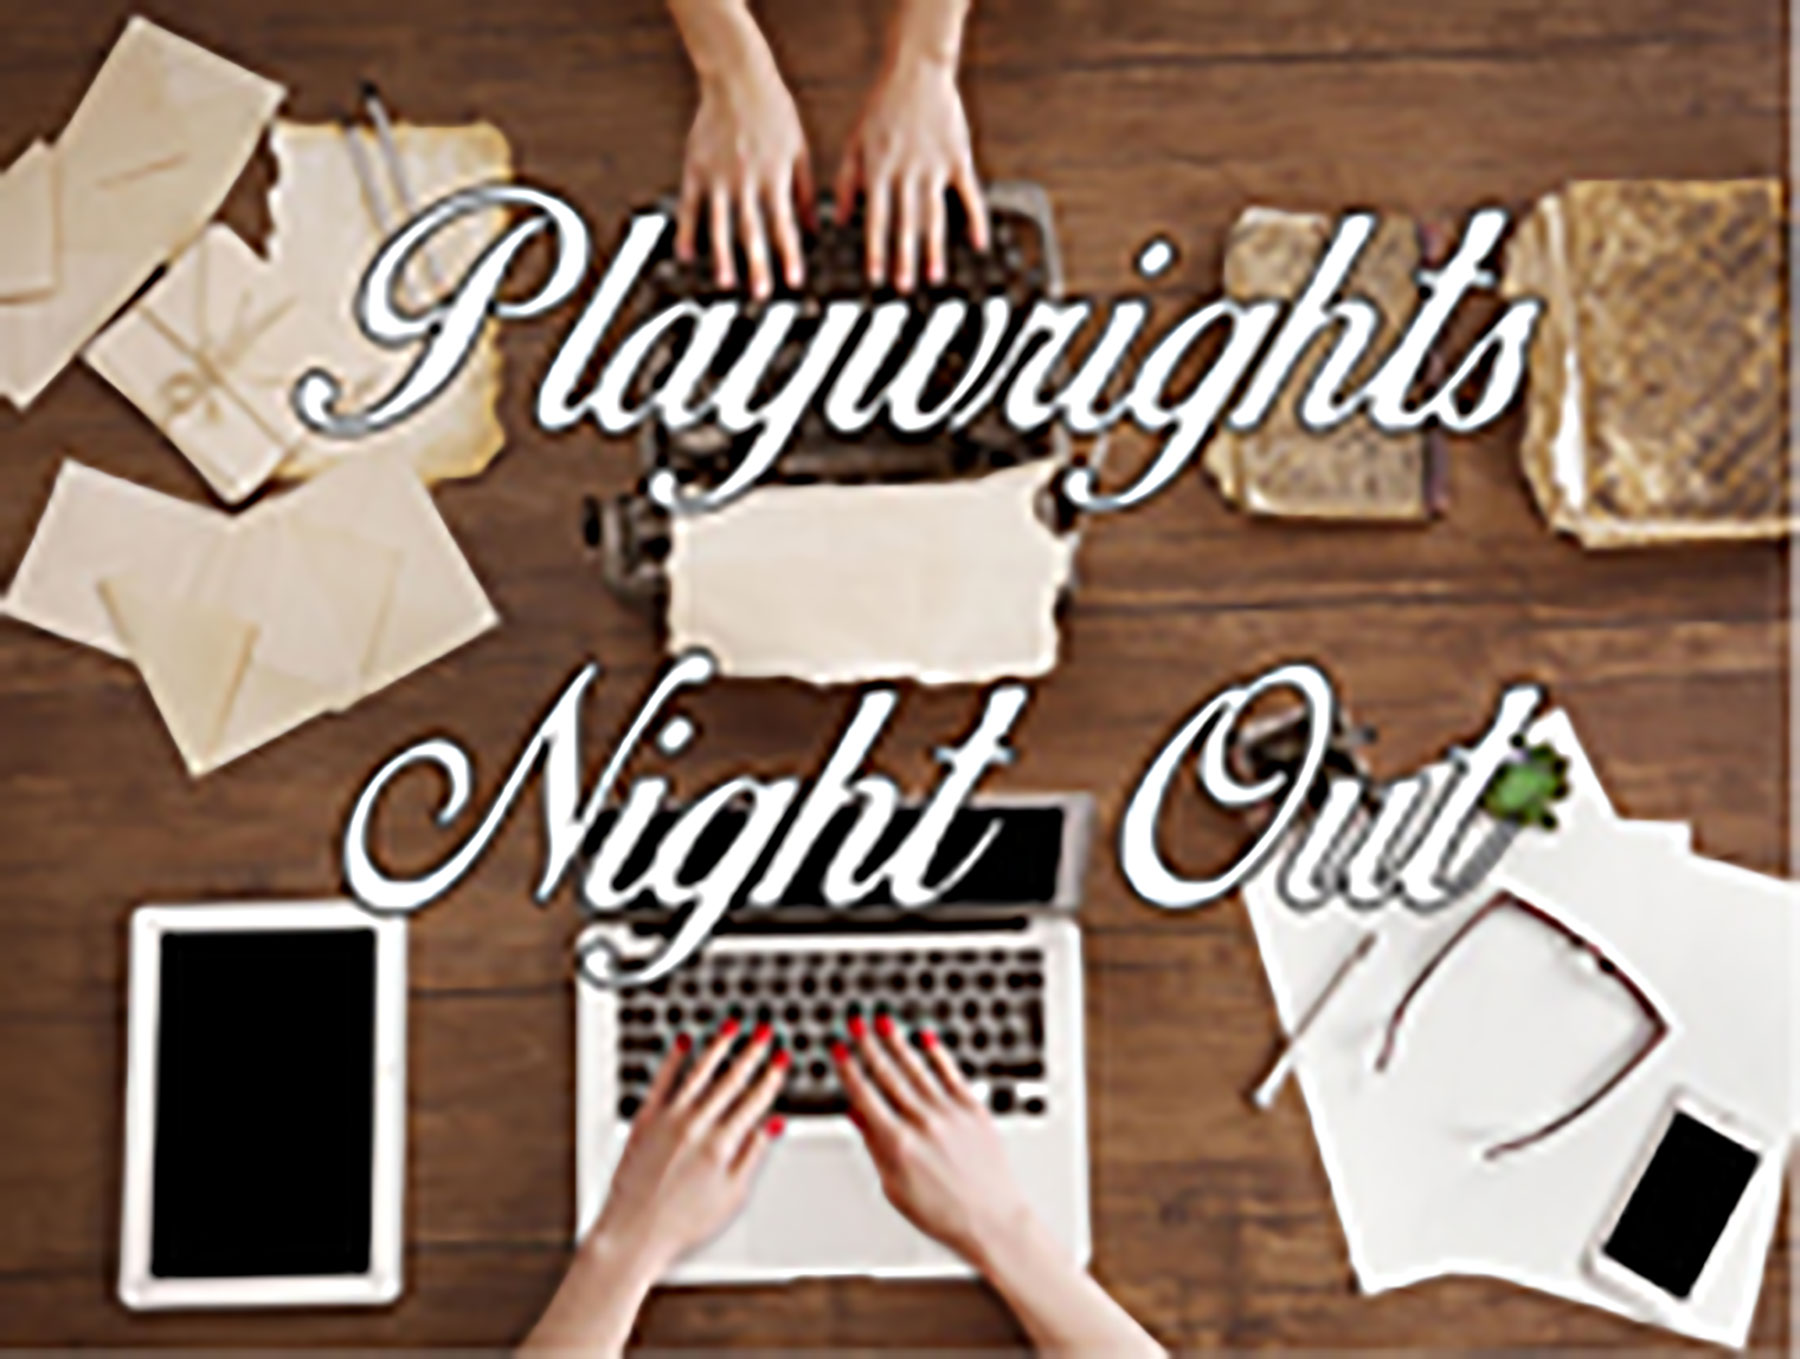 Playwright's Night Out